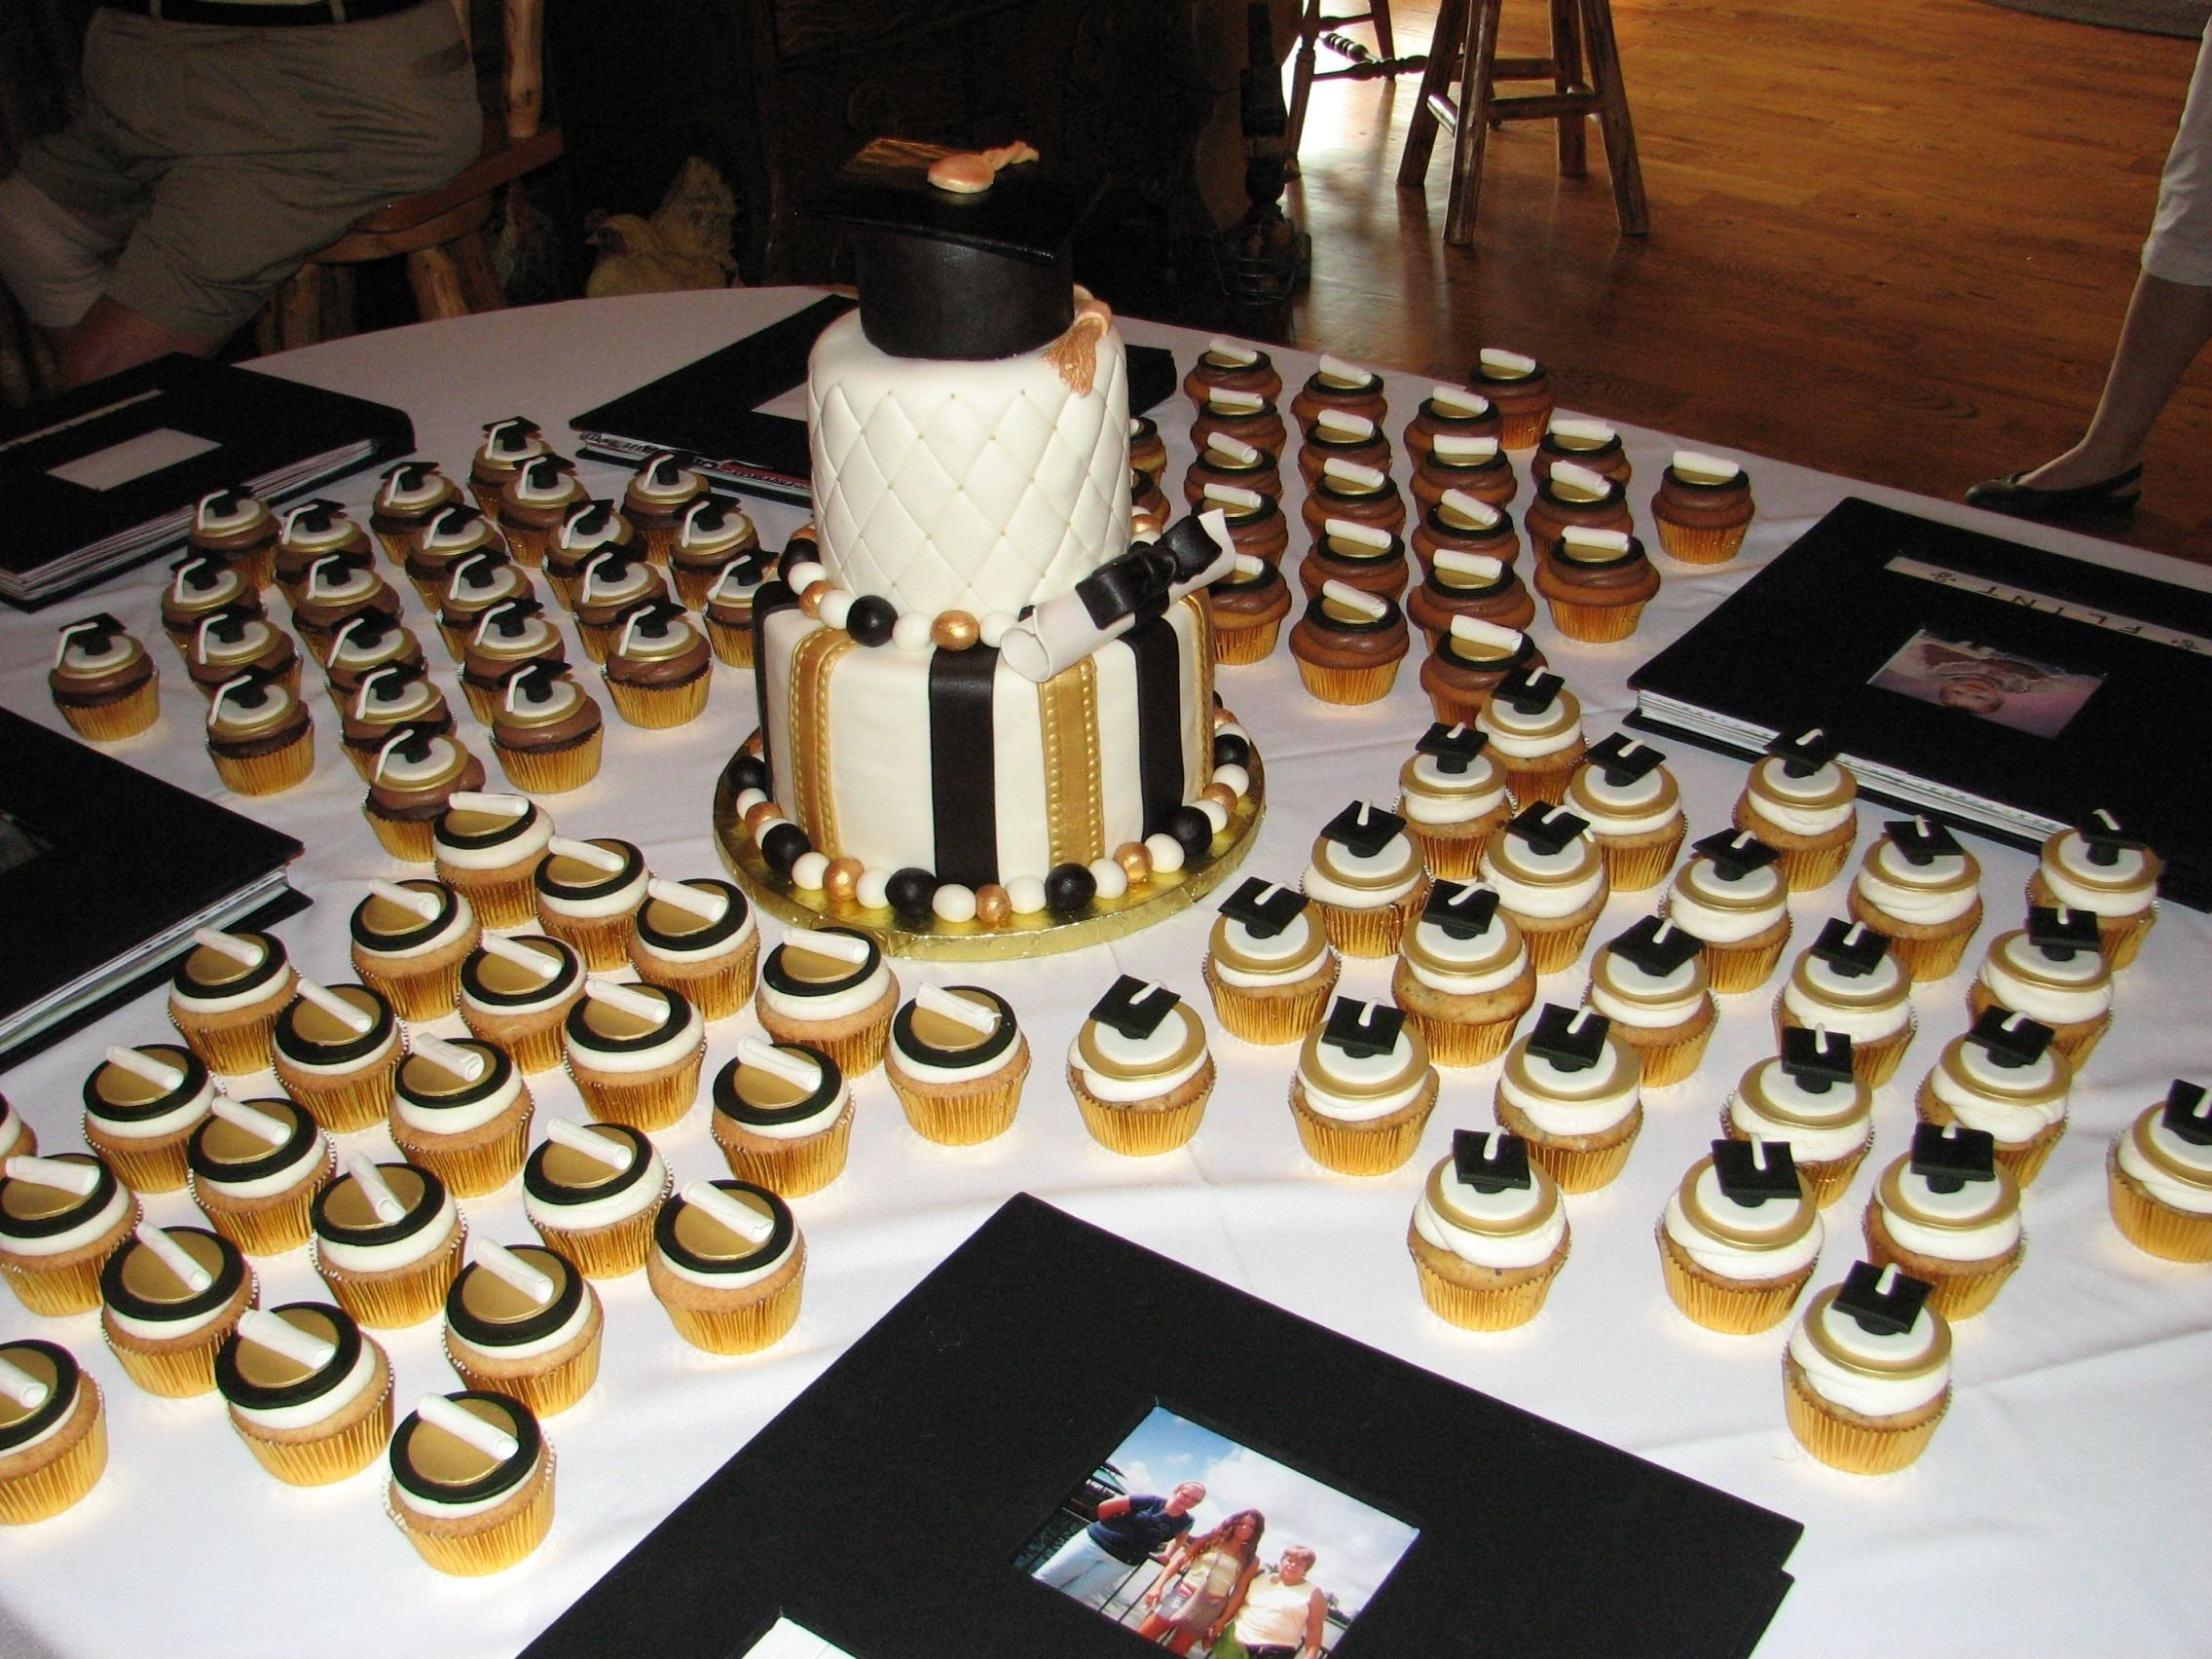 10 Perfect Black And White Food Ideas black gold white graduation cake graduation ideas pinterest 2020